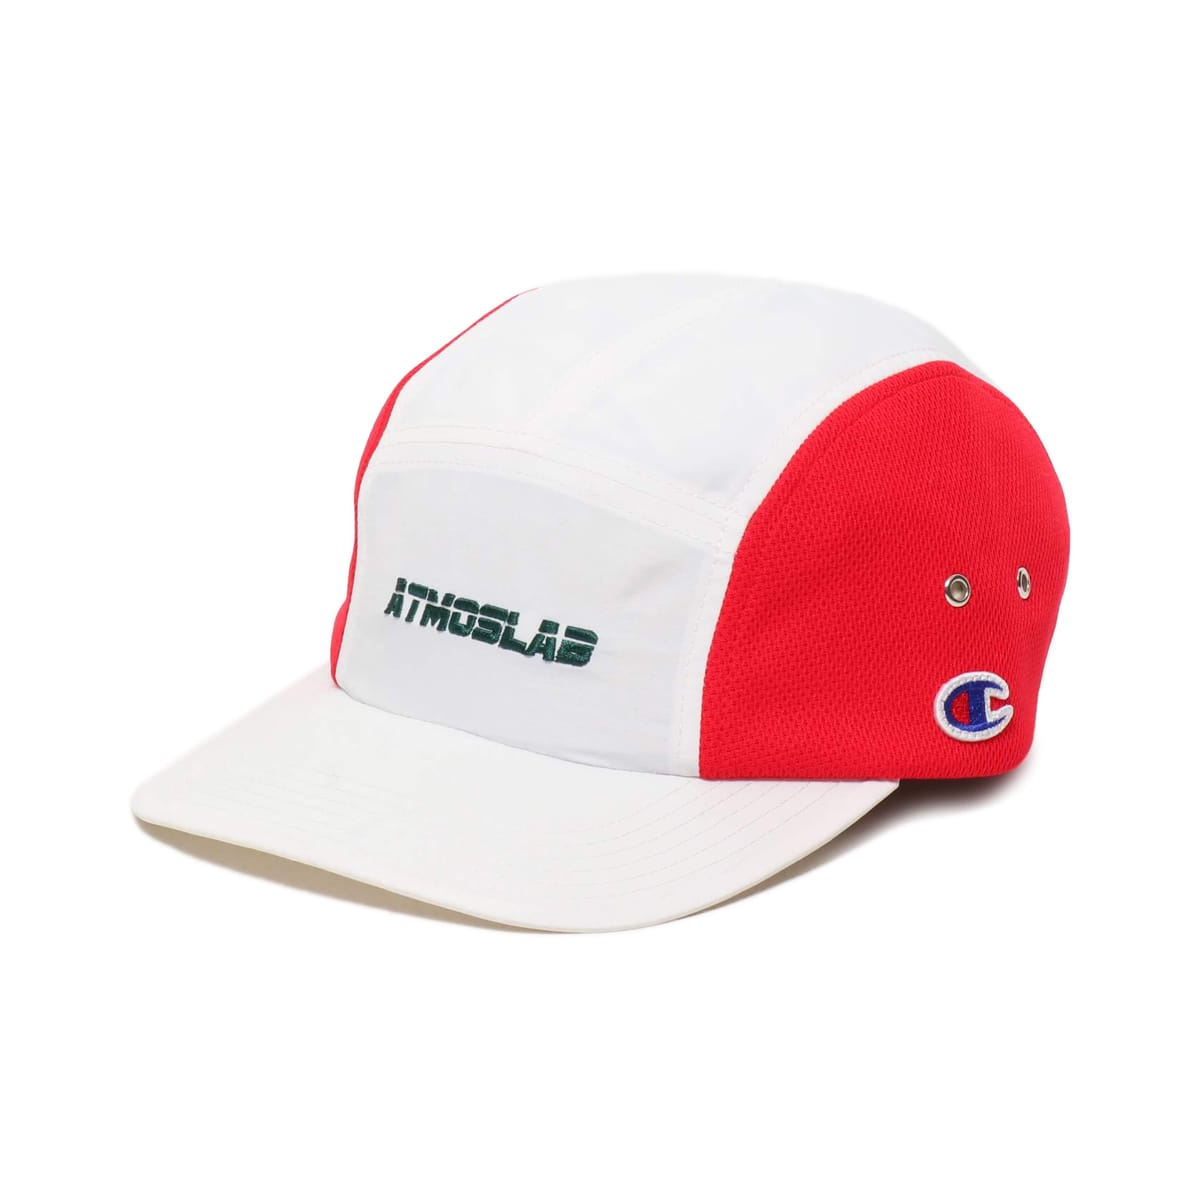 CHAMPION x ATMOS LAB NYLON MESH CAP WHITE 19SS-S_photo_large